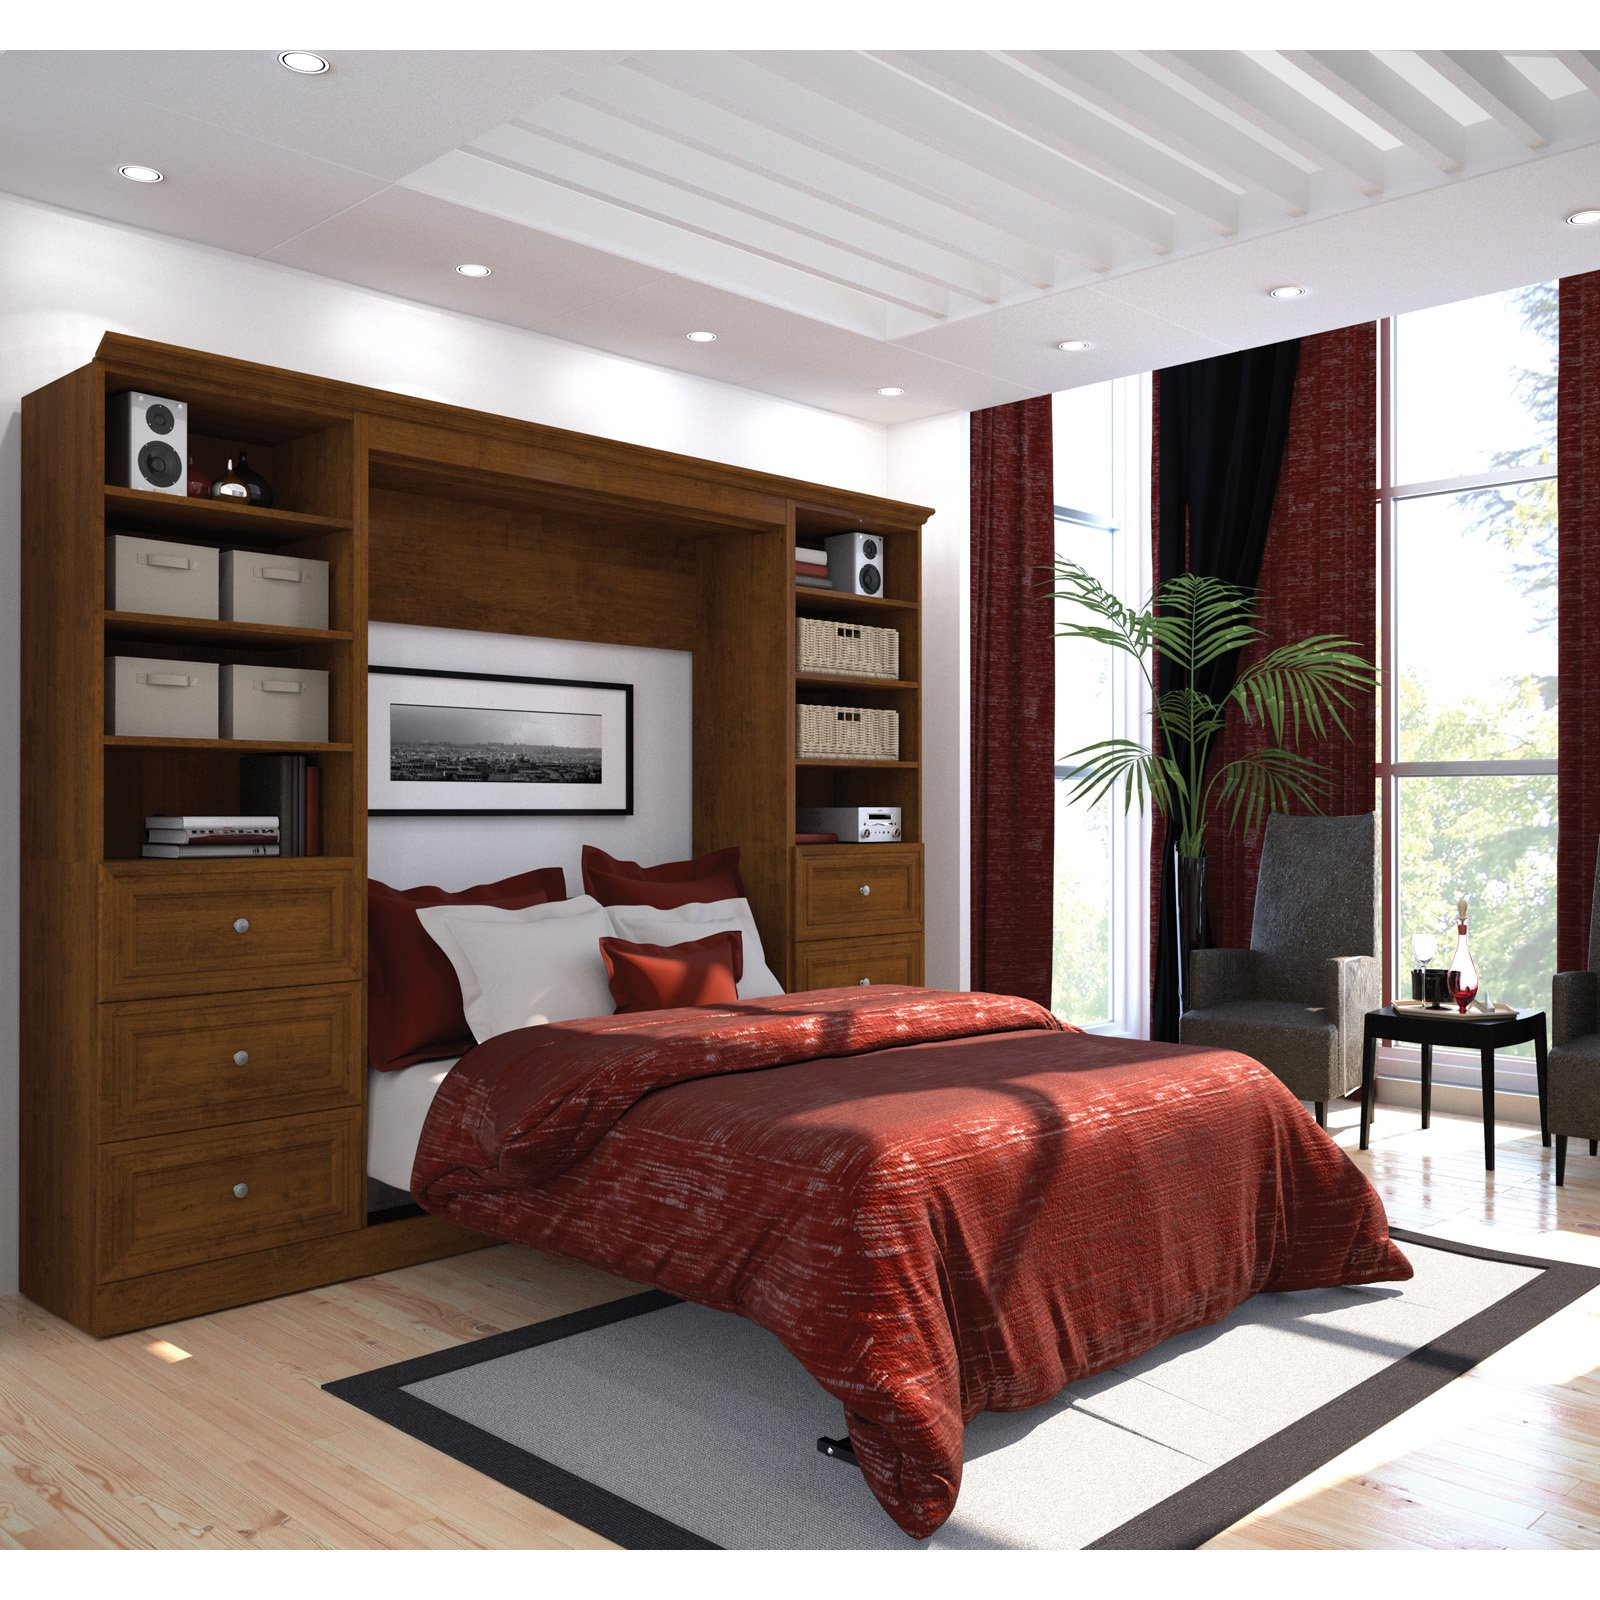 Versatile by Bestar 109'' Full Wall bed kit in Tuscany Brown